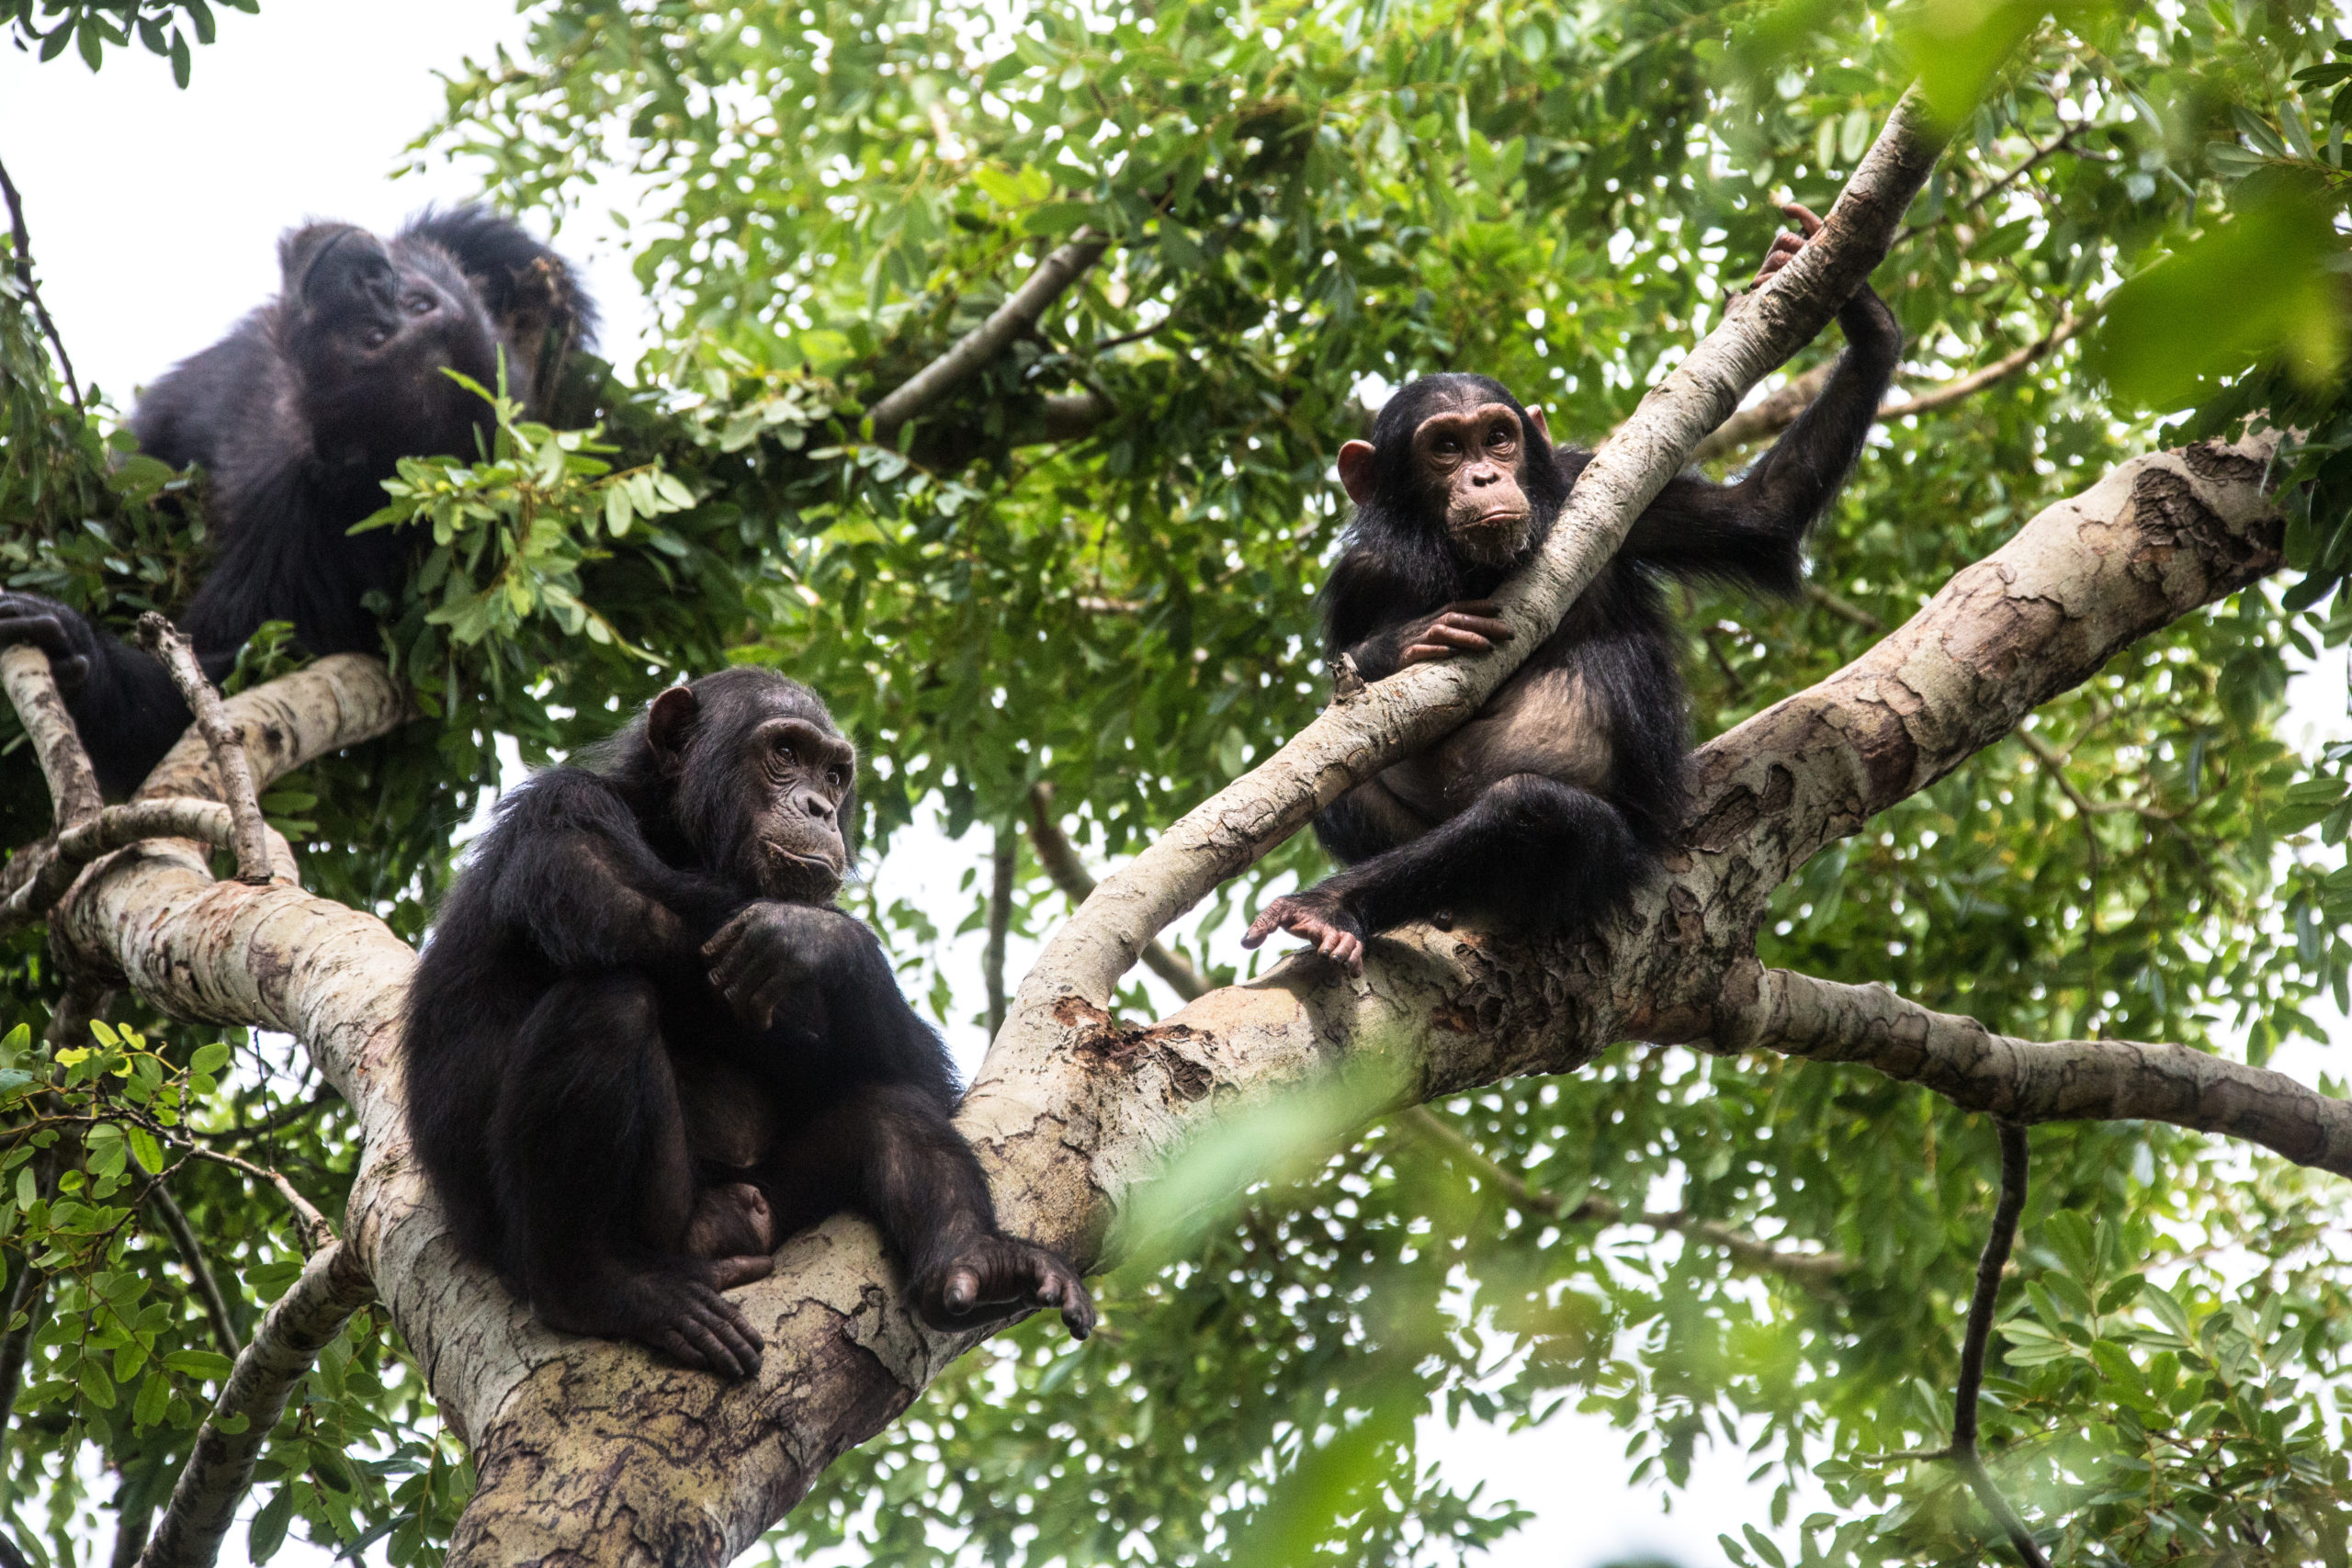 chimpanzees in a forest